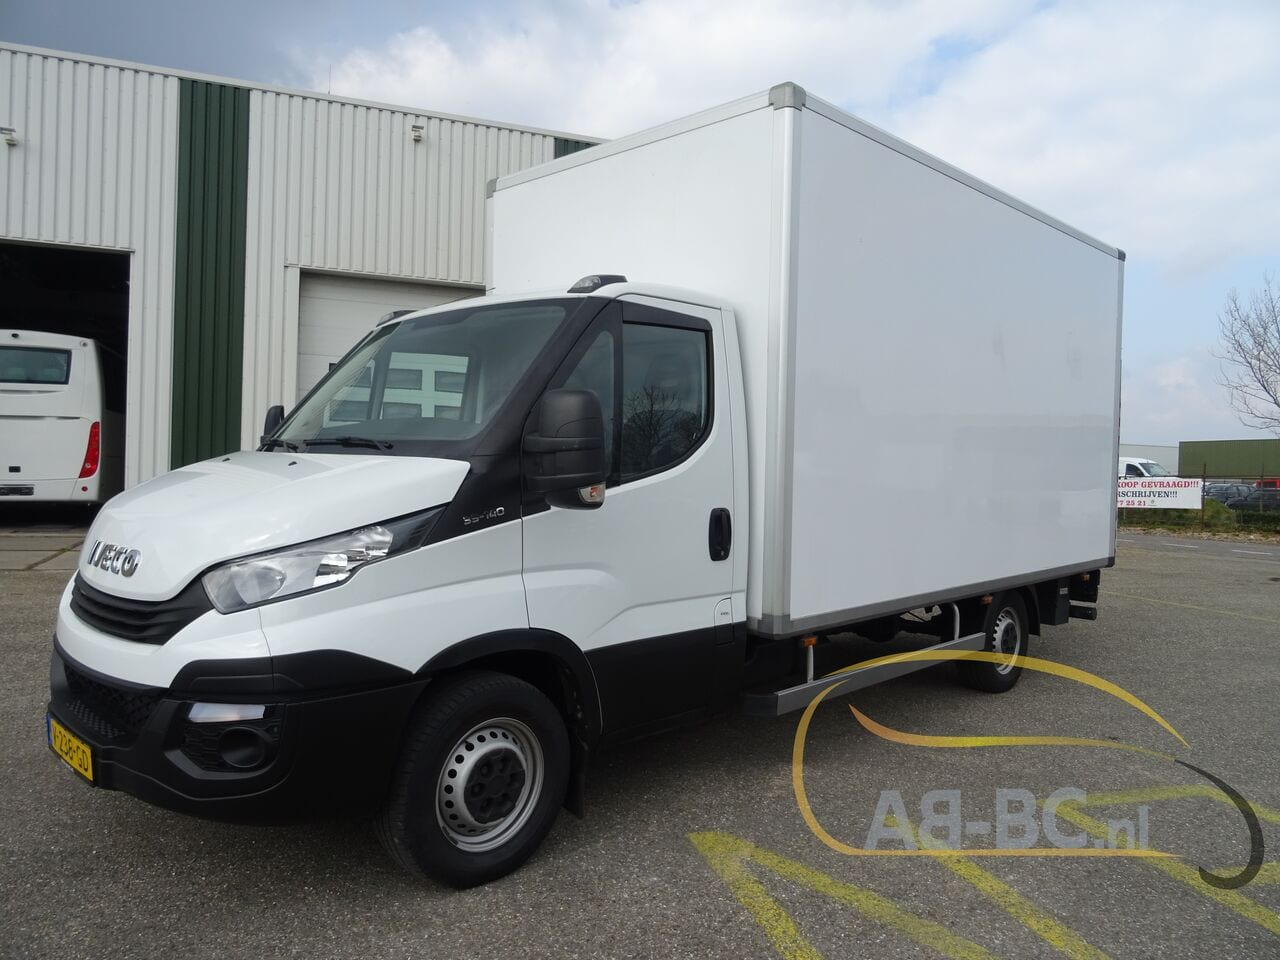 commercial-vehicle-box-truck-3-5tIVECO-Daily-35S14-EURO-6---1618842020942519323_big_691ed77b2fe46a7d2cb5df2943b11d22--20081111411660340700